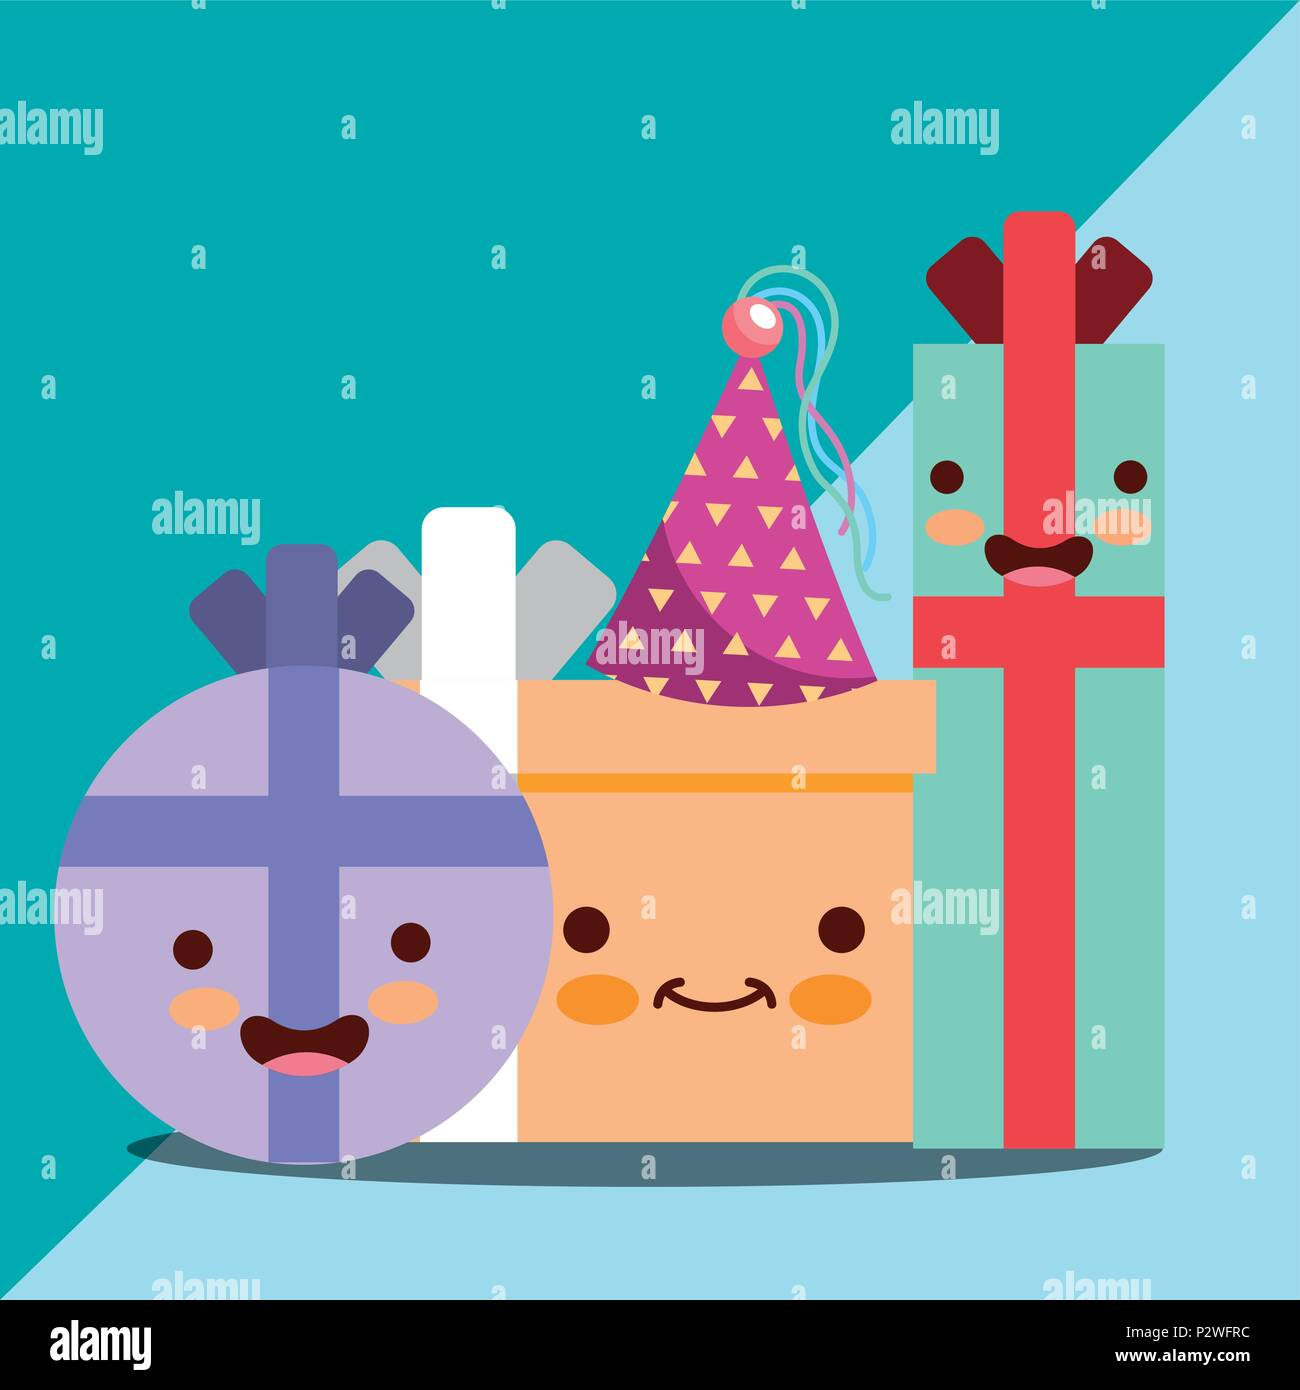 Kawaii Happy Gift Boxes Cartoon Characters Birthday Card Vector Illustration